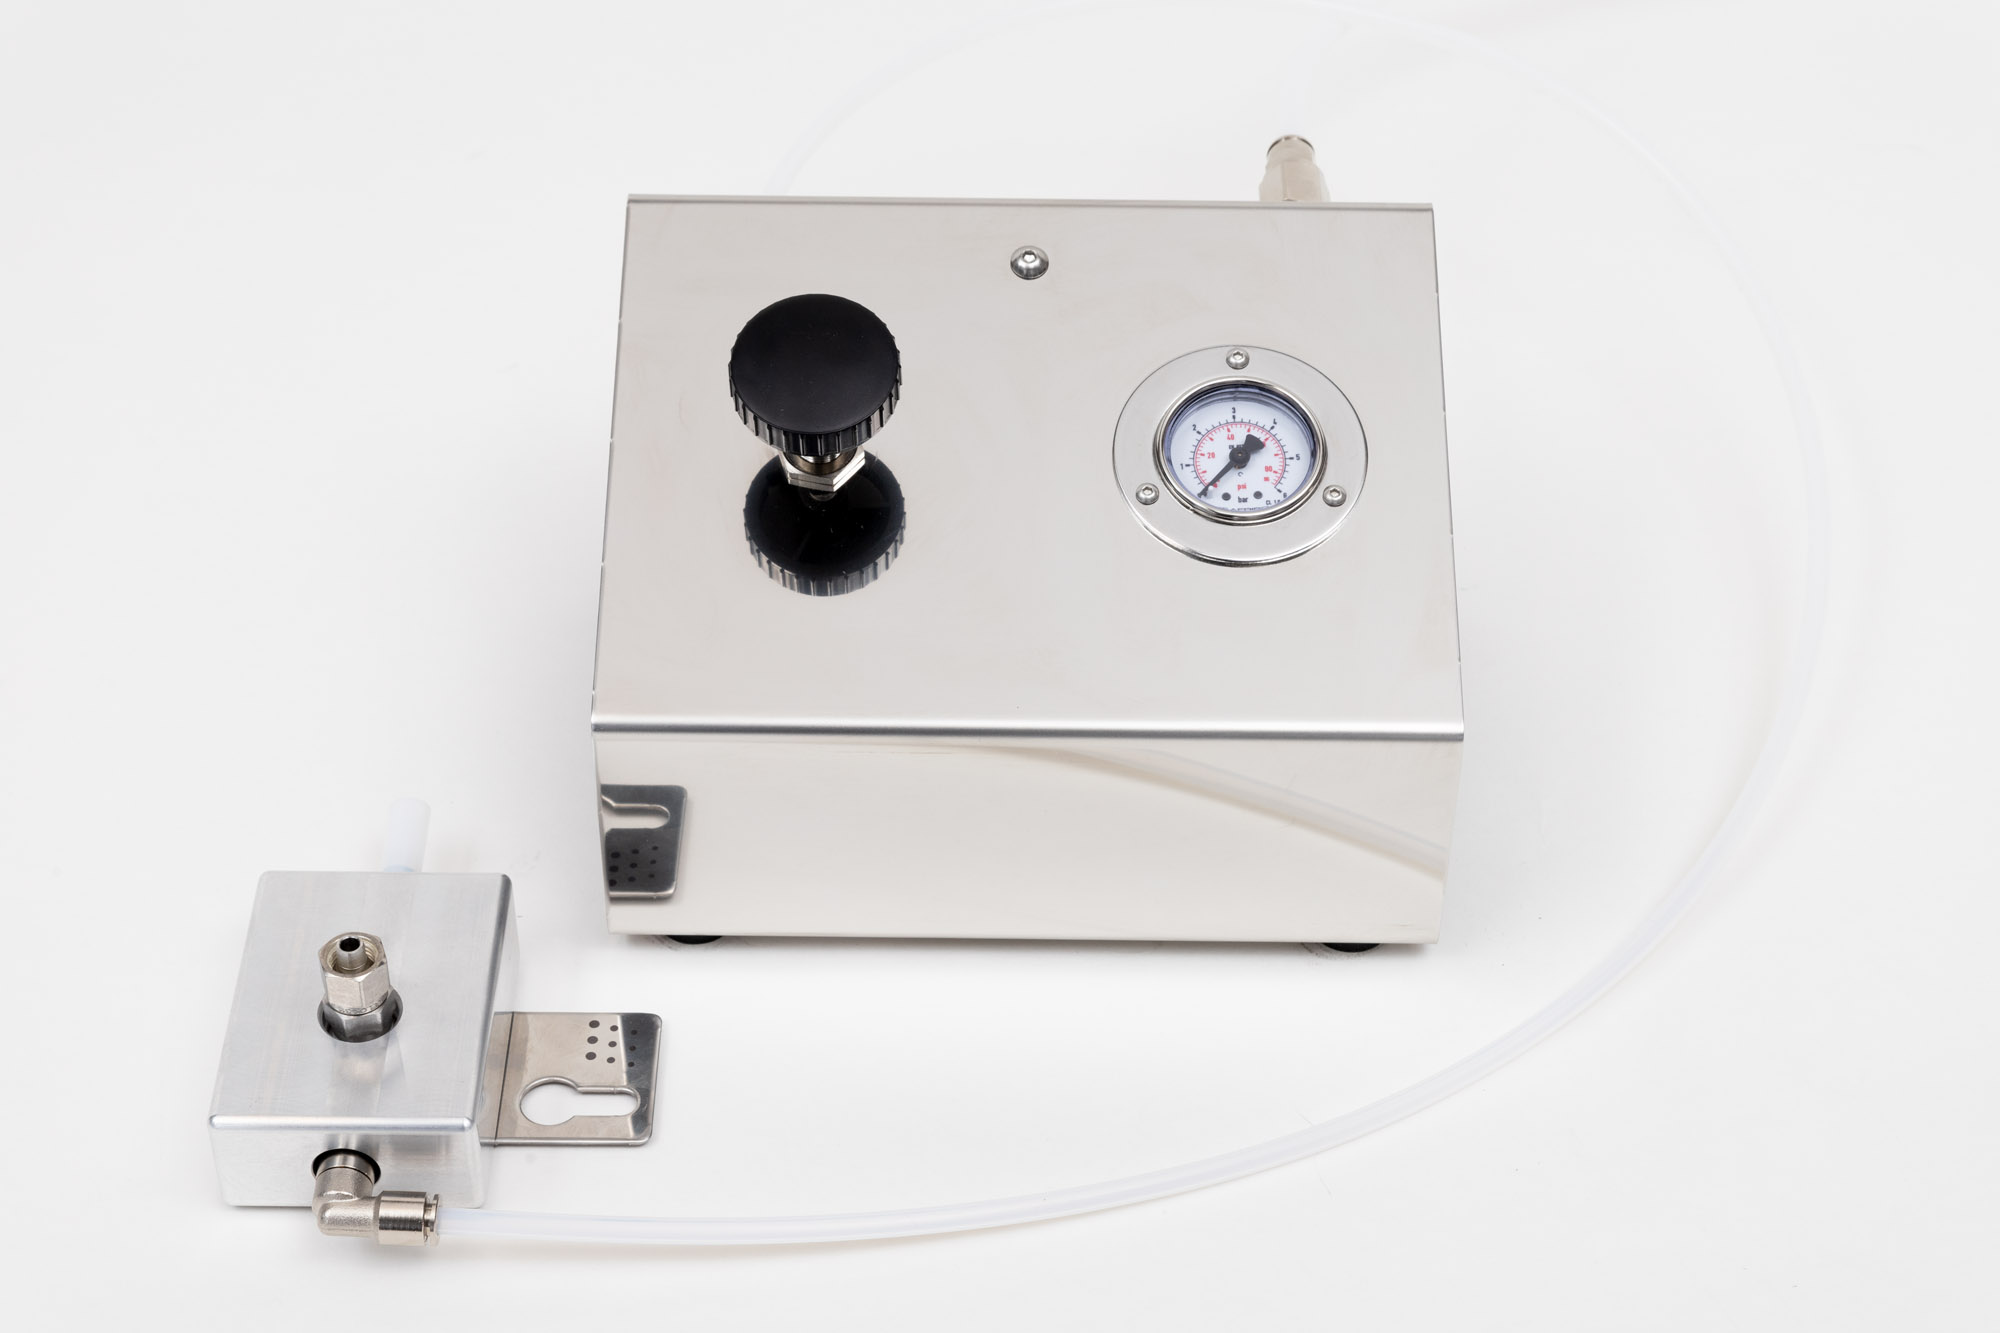 EKV - Pre-dilution device for VOC emission test chambers